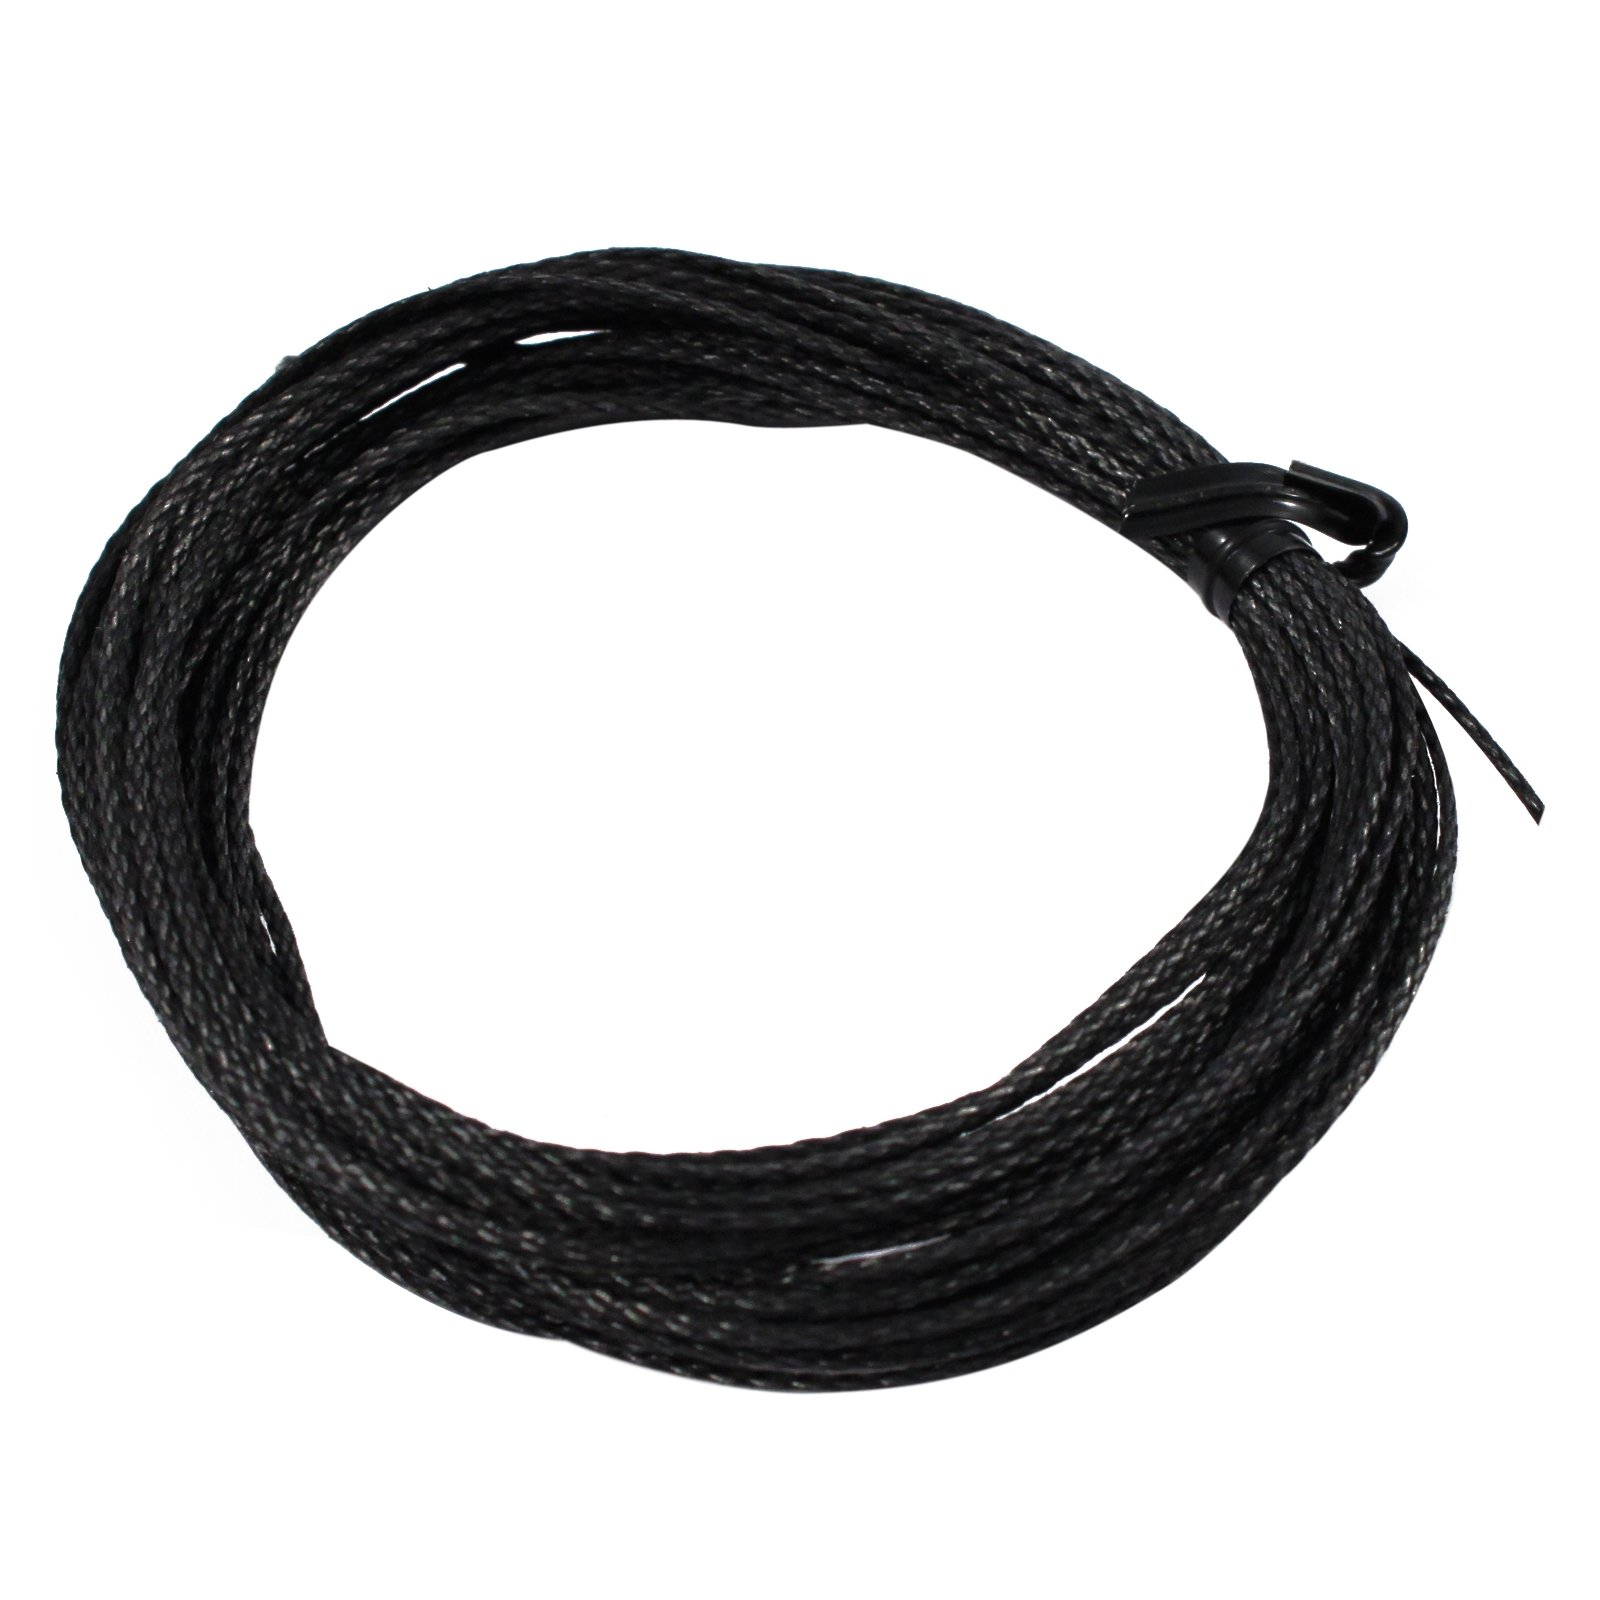 Black Braided Vectran Cord Survival 200lb Breaking Strength Single